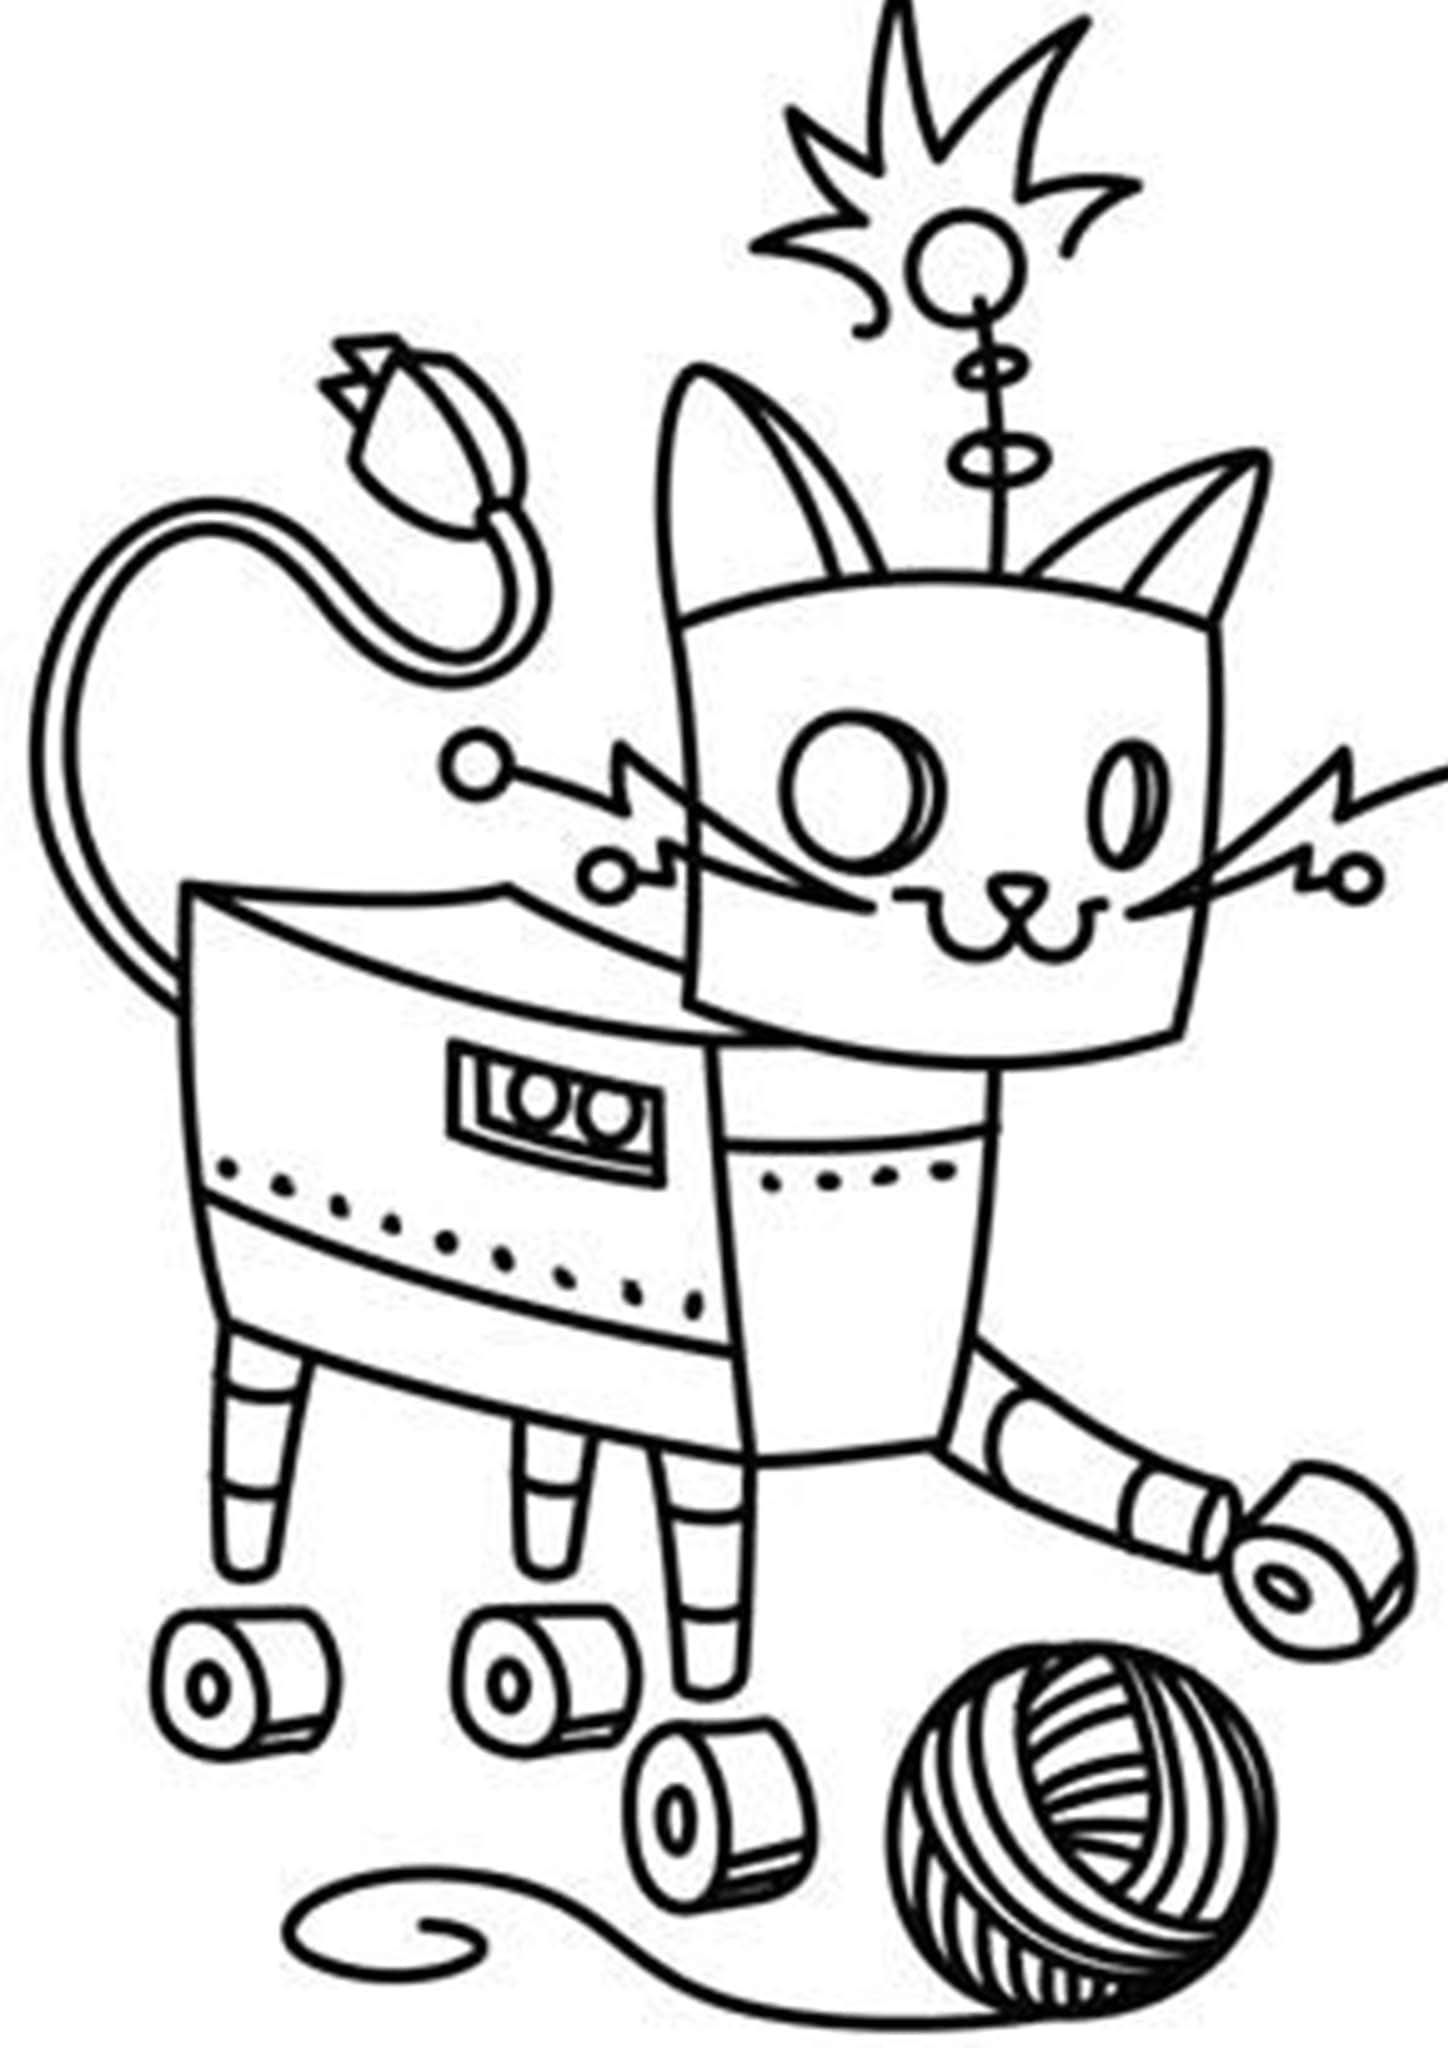 Free Easy To Print Robot Coloring Pages Robots Drawing Coloring Pages Pattern Coloring Pages